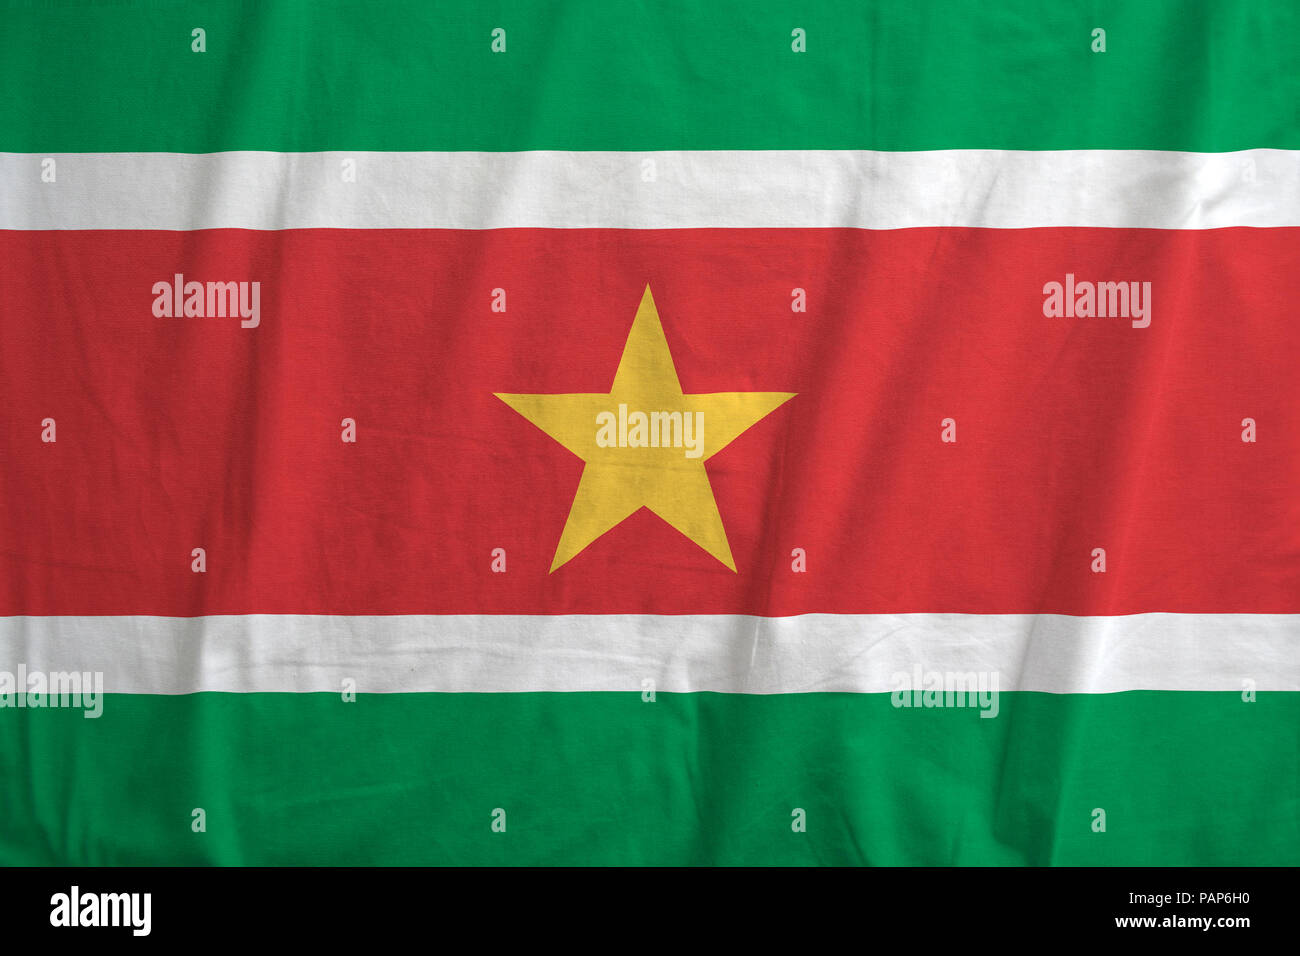 Fabric texture of the flag of Suriname. - Stock Image